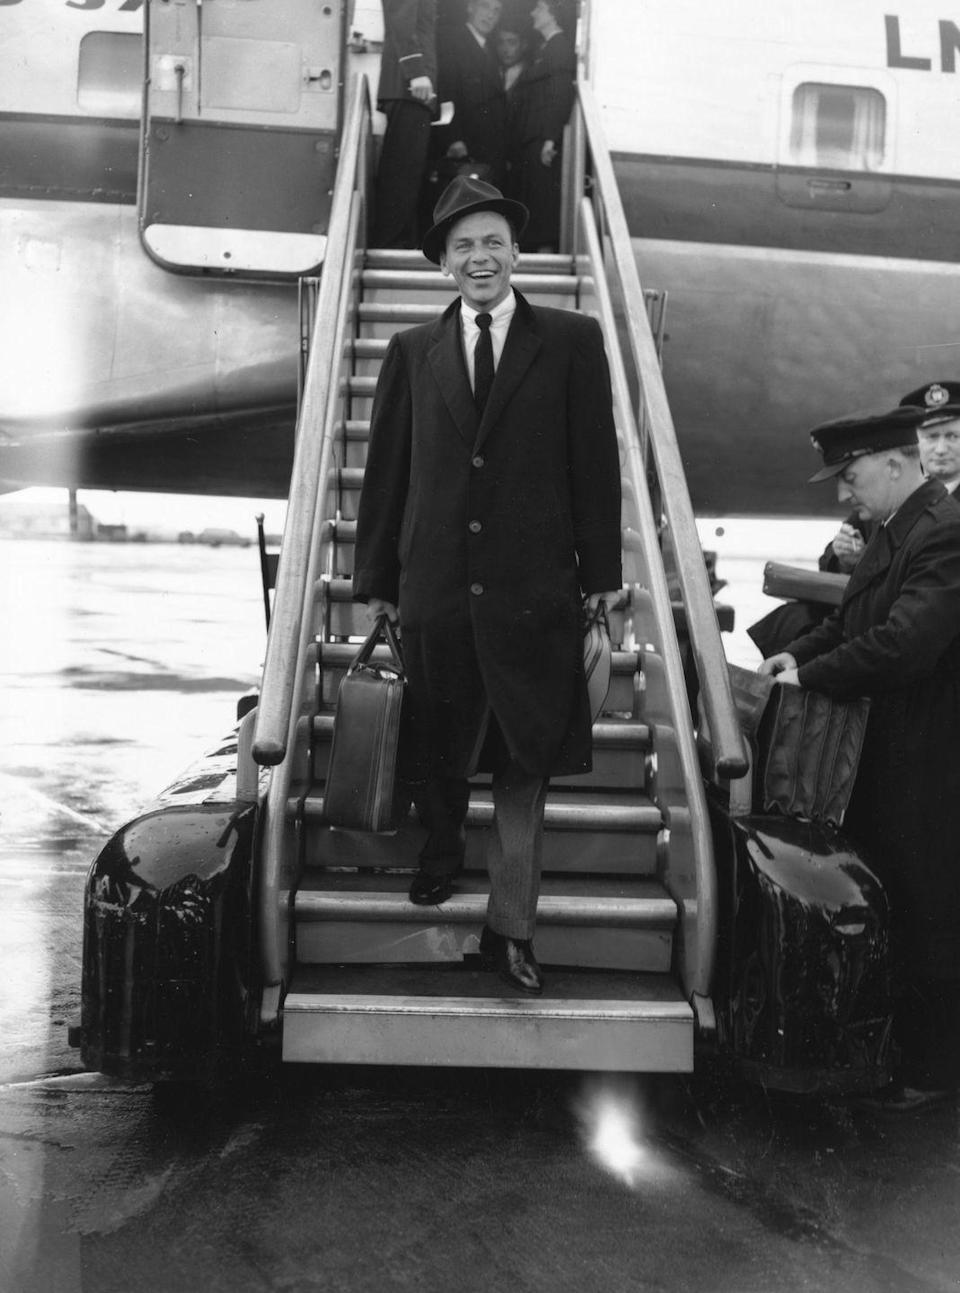 <p>Sinatra was just getting started at the age of 40: He was at the beginning of his major comeback, having released In the Wee Small Hours of the Morning. At the time, he was married to Ava Gardner. </p>